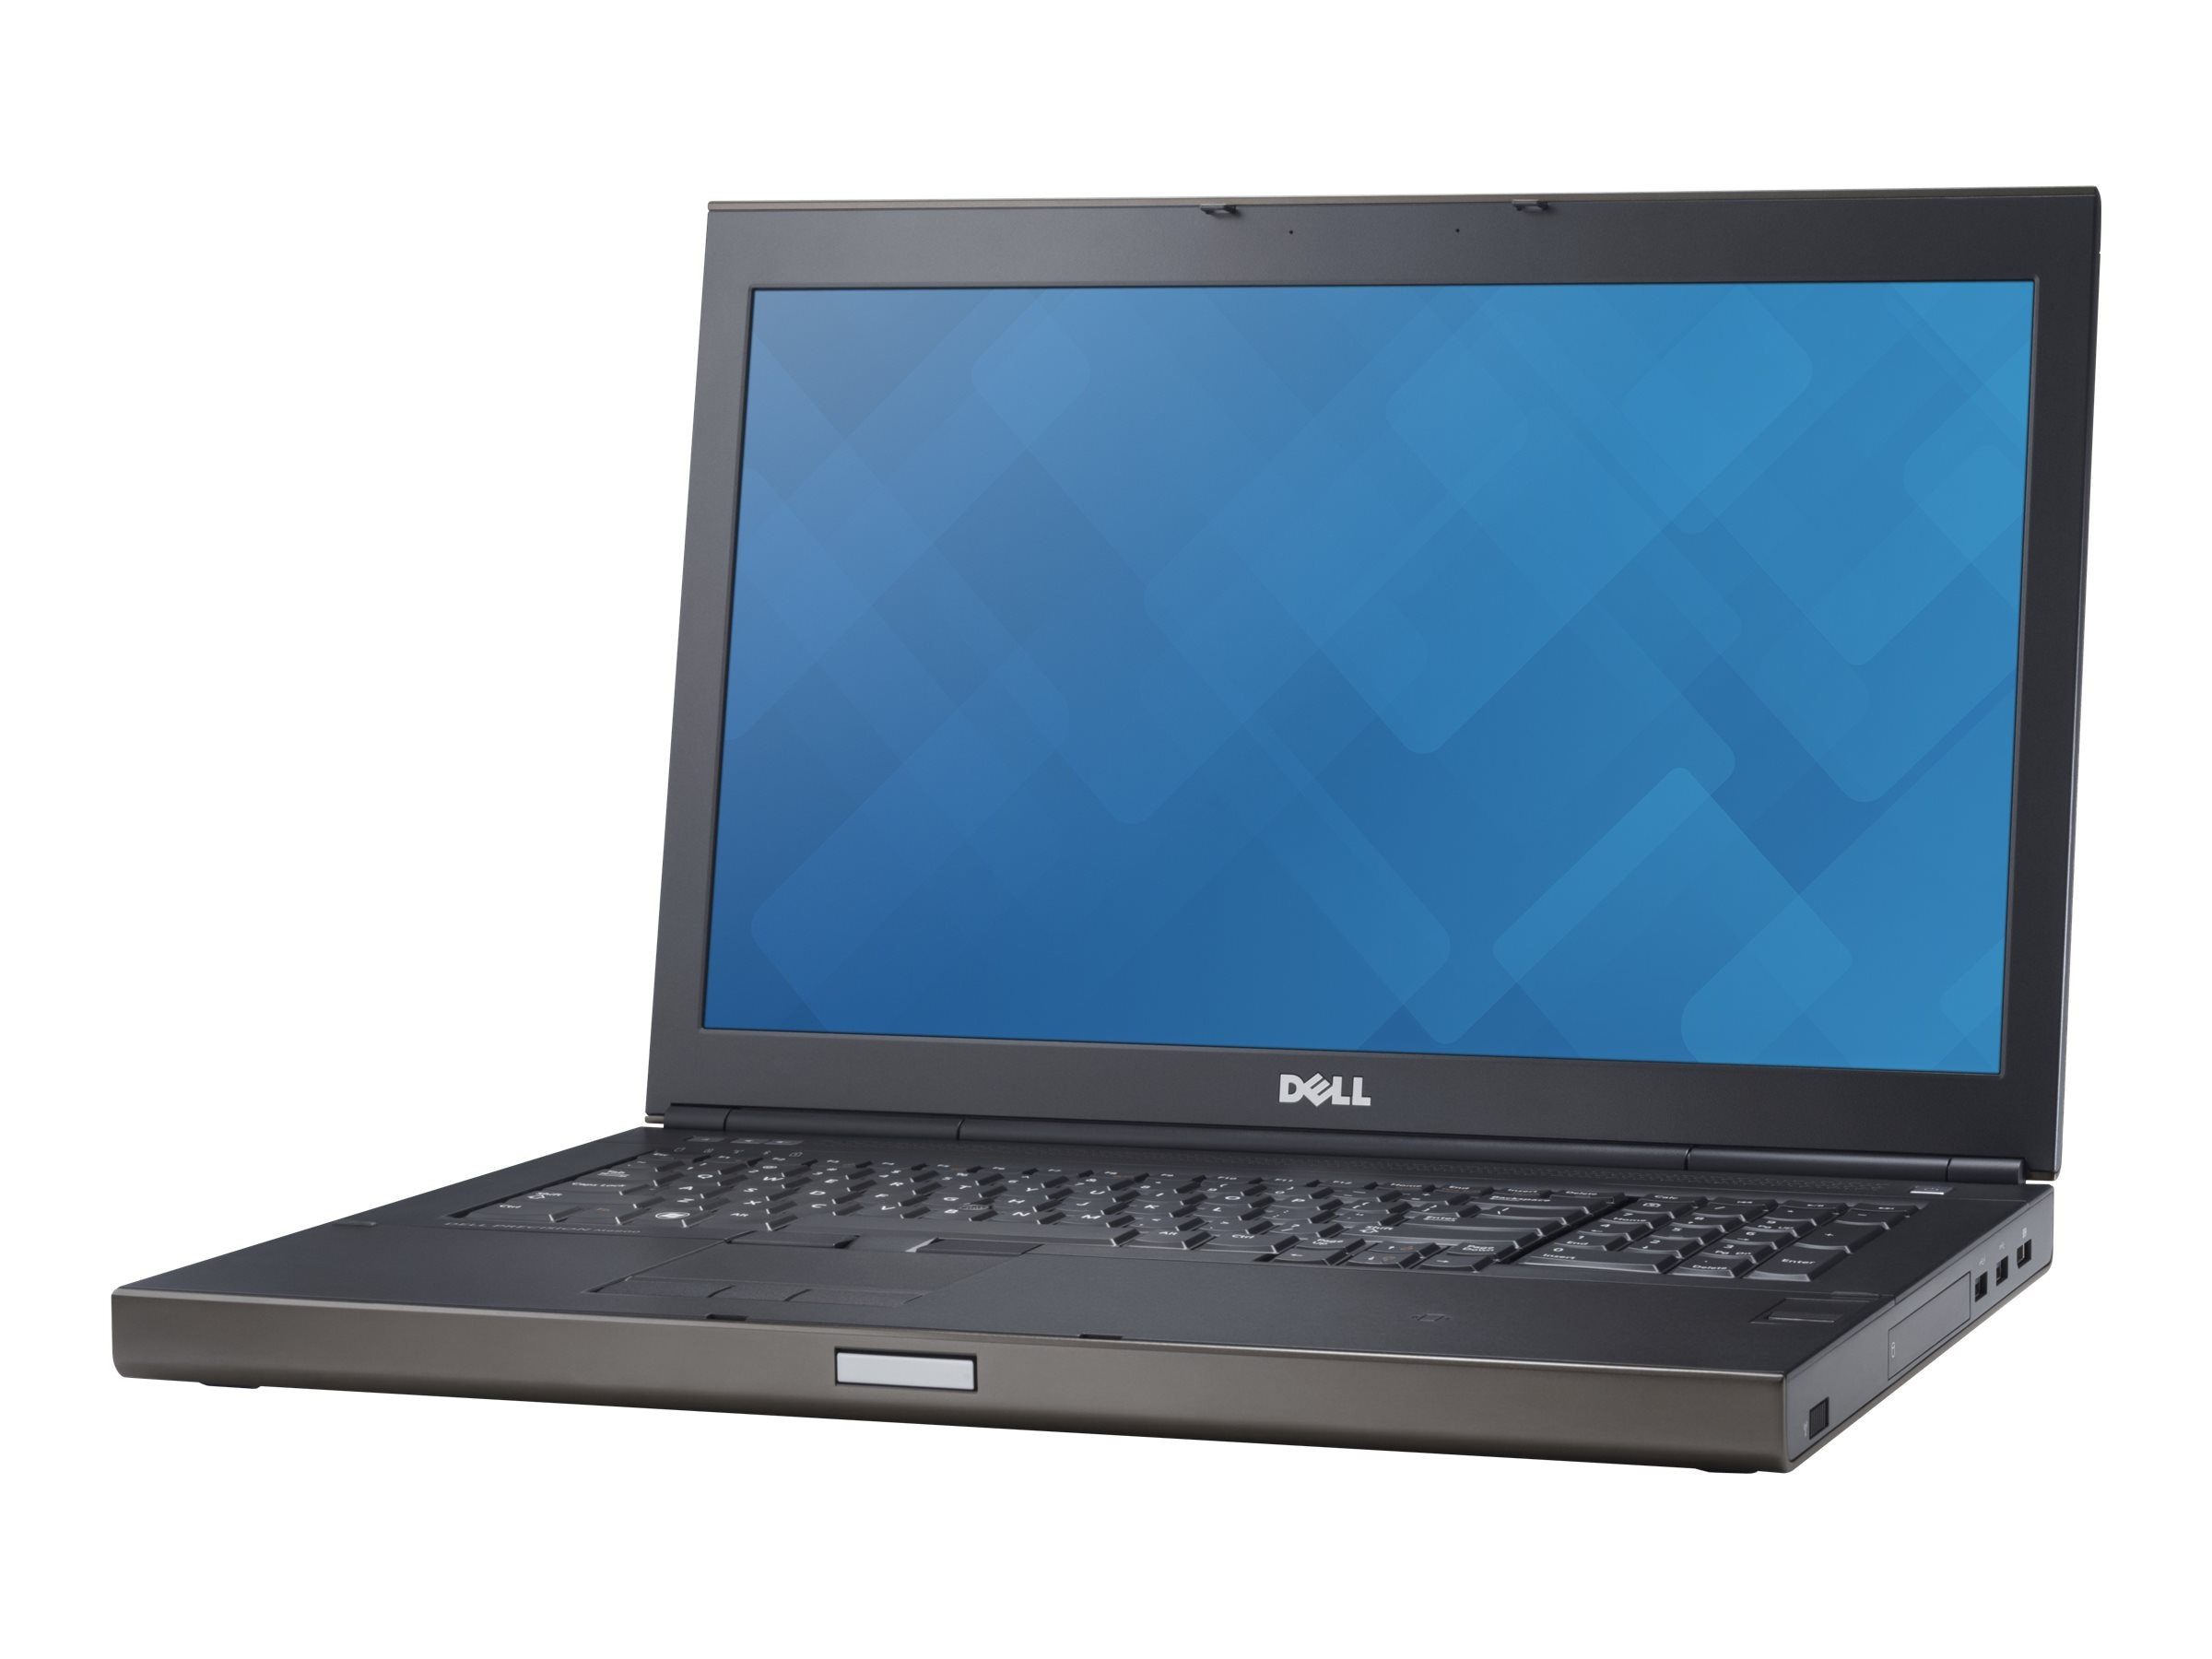 Dell Precision M6800 Core i7-4810MQ 2.8GHz 8GB 500GB M6100 DVD+RW BT WC 17.3 FHD W7P64-W8.1P, 463-5897, 19858138, Workstations - Mobile